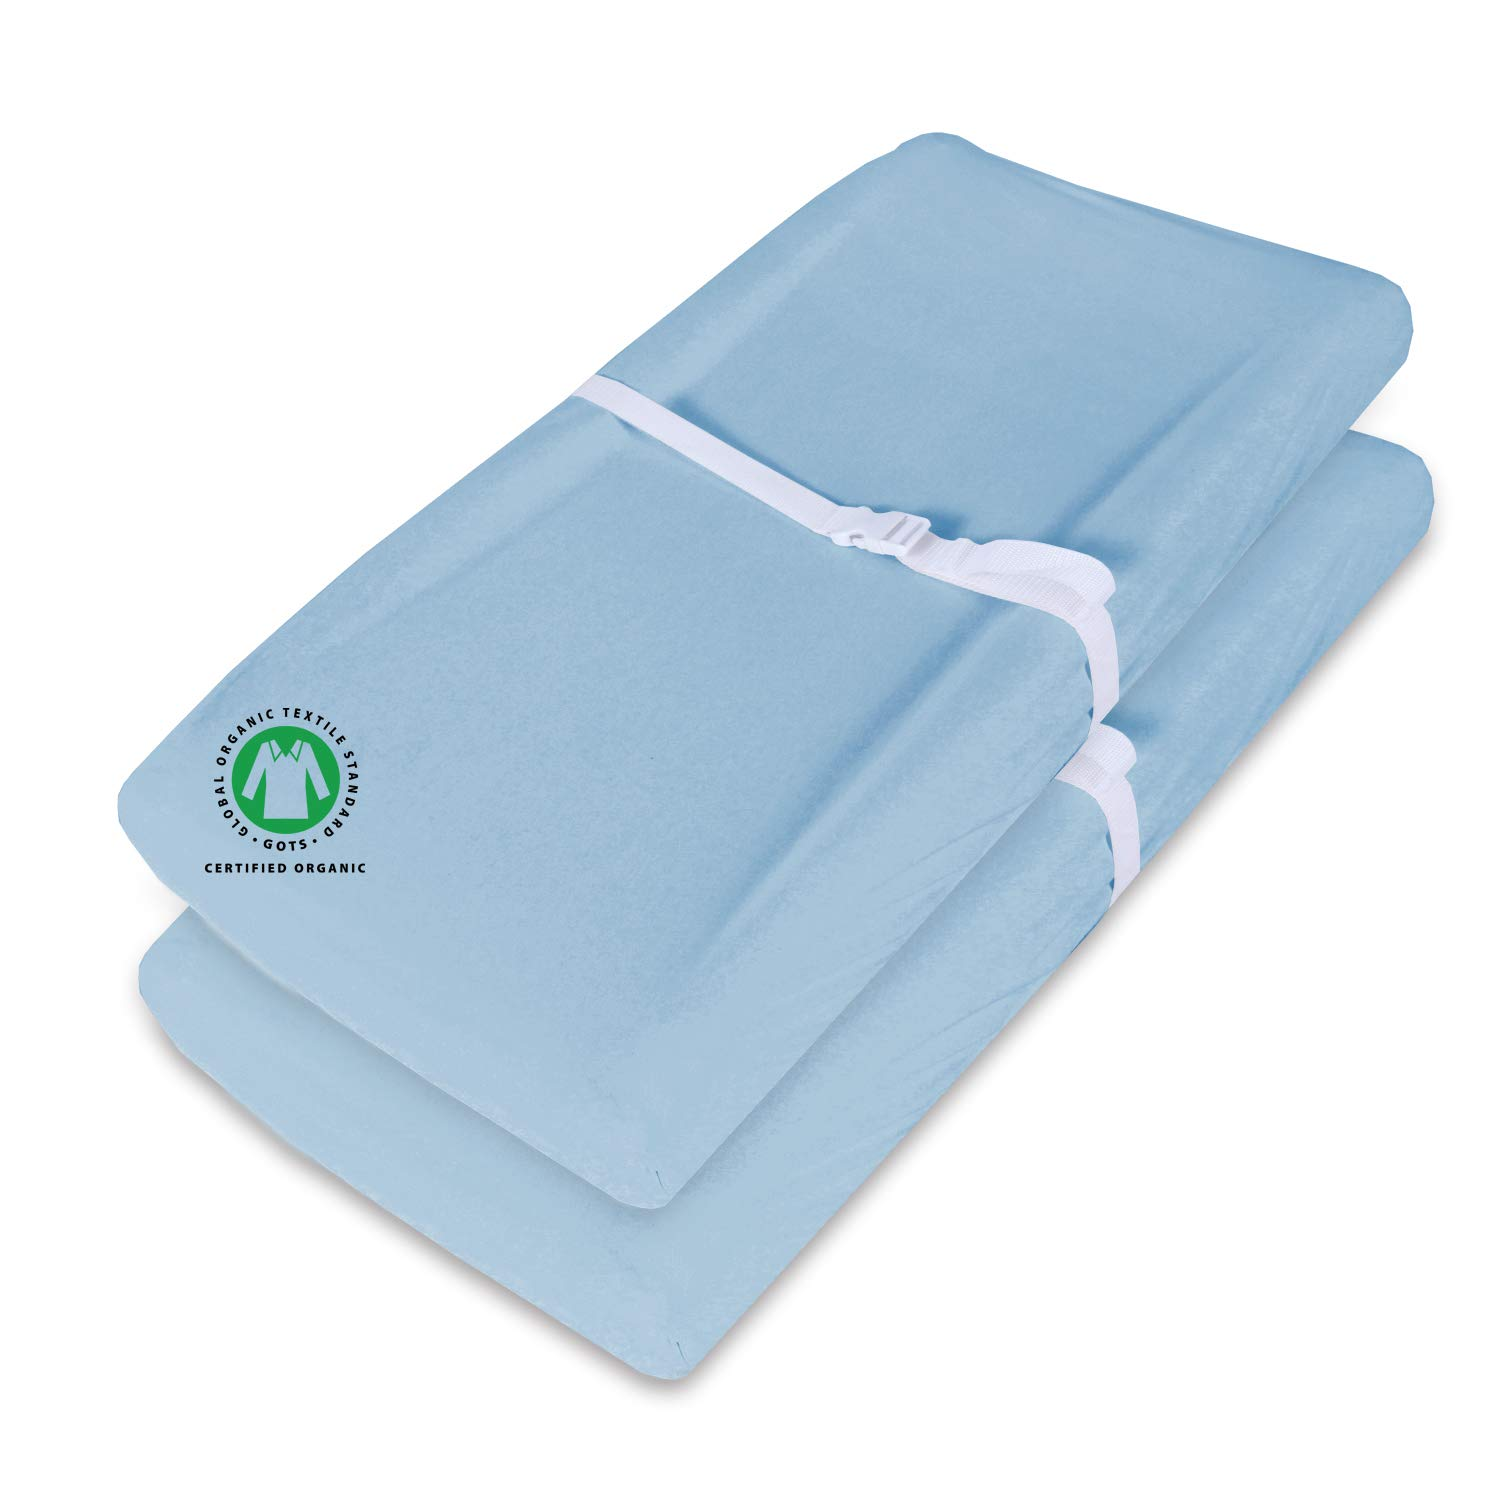 100% Organic Changing Pad Cover/Change Table Cover Sheets, 2 Pack Waterproof Light Blue Changing Pad Covers, Ultra Soft Organic Cotton